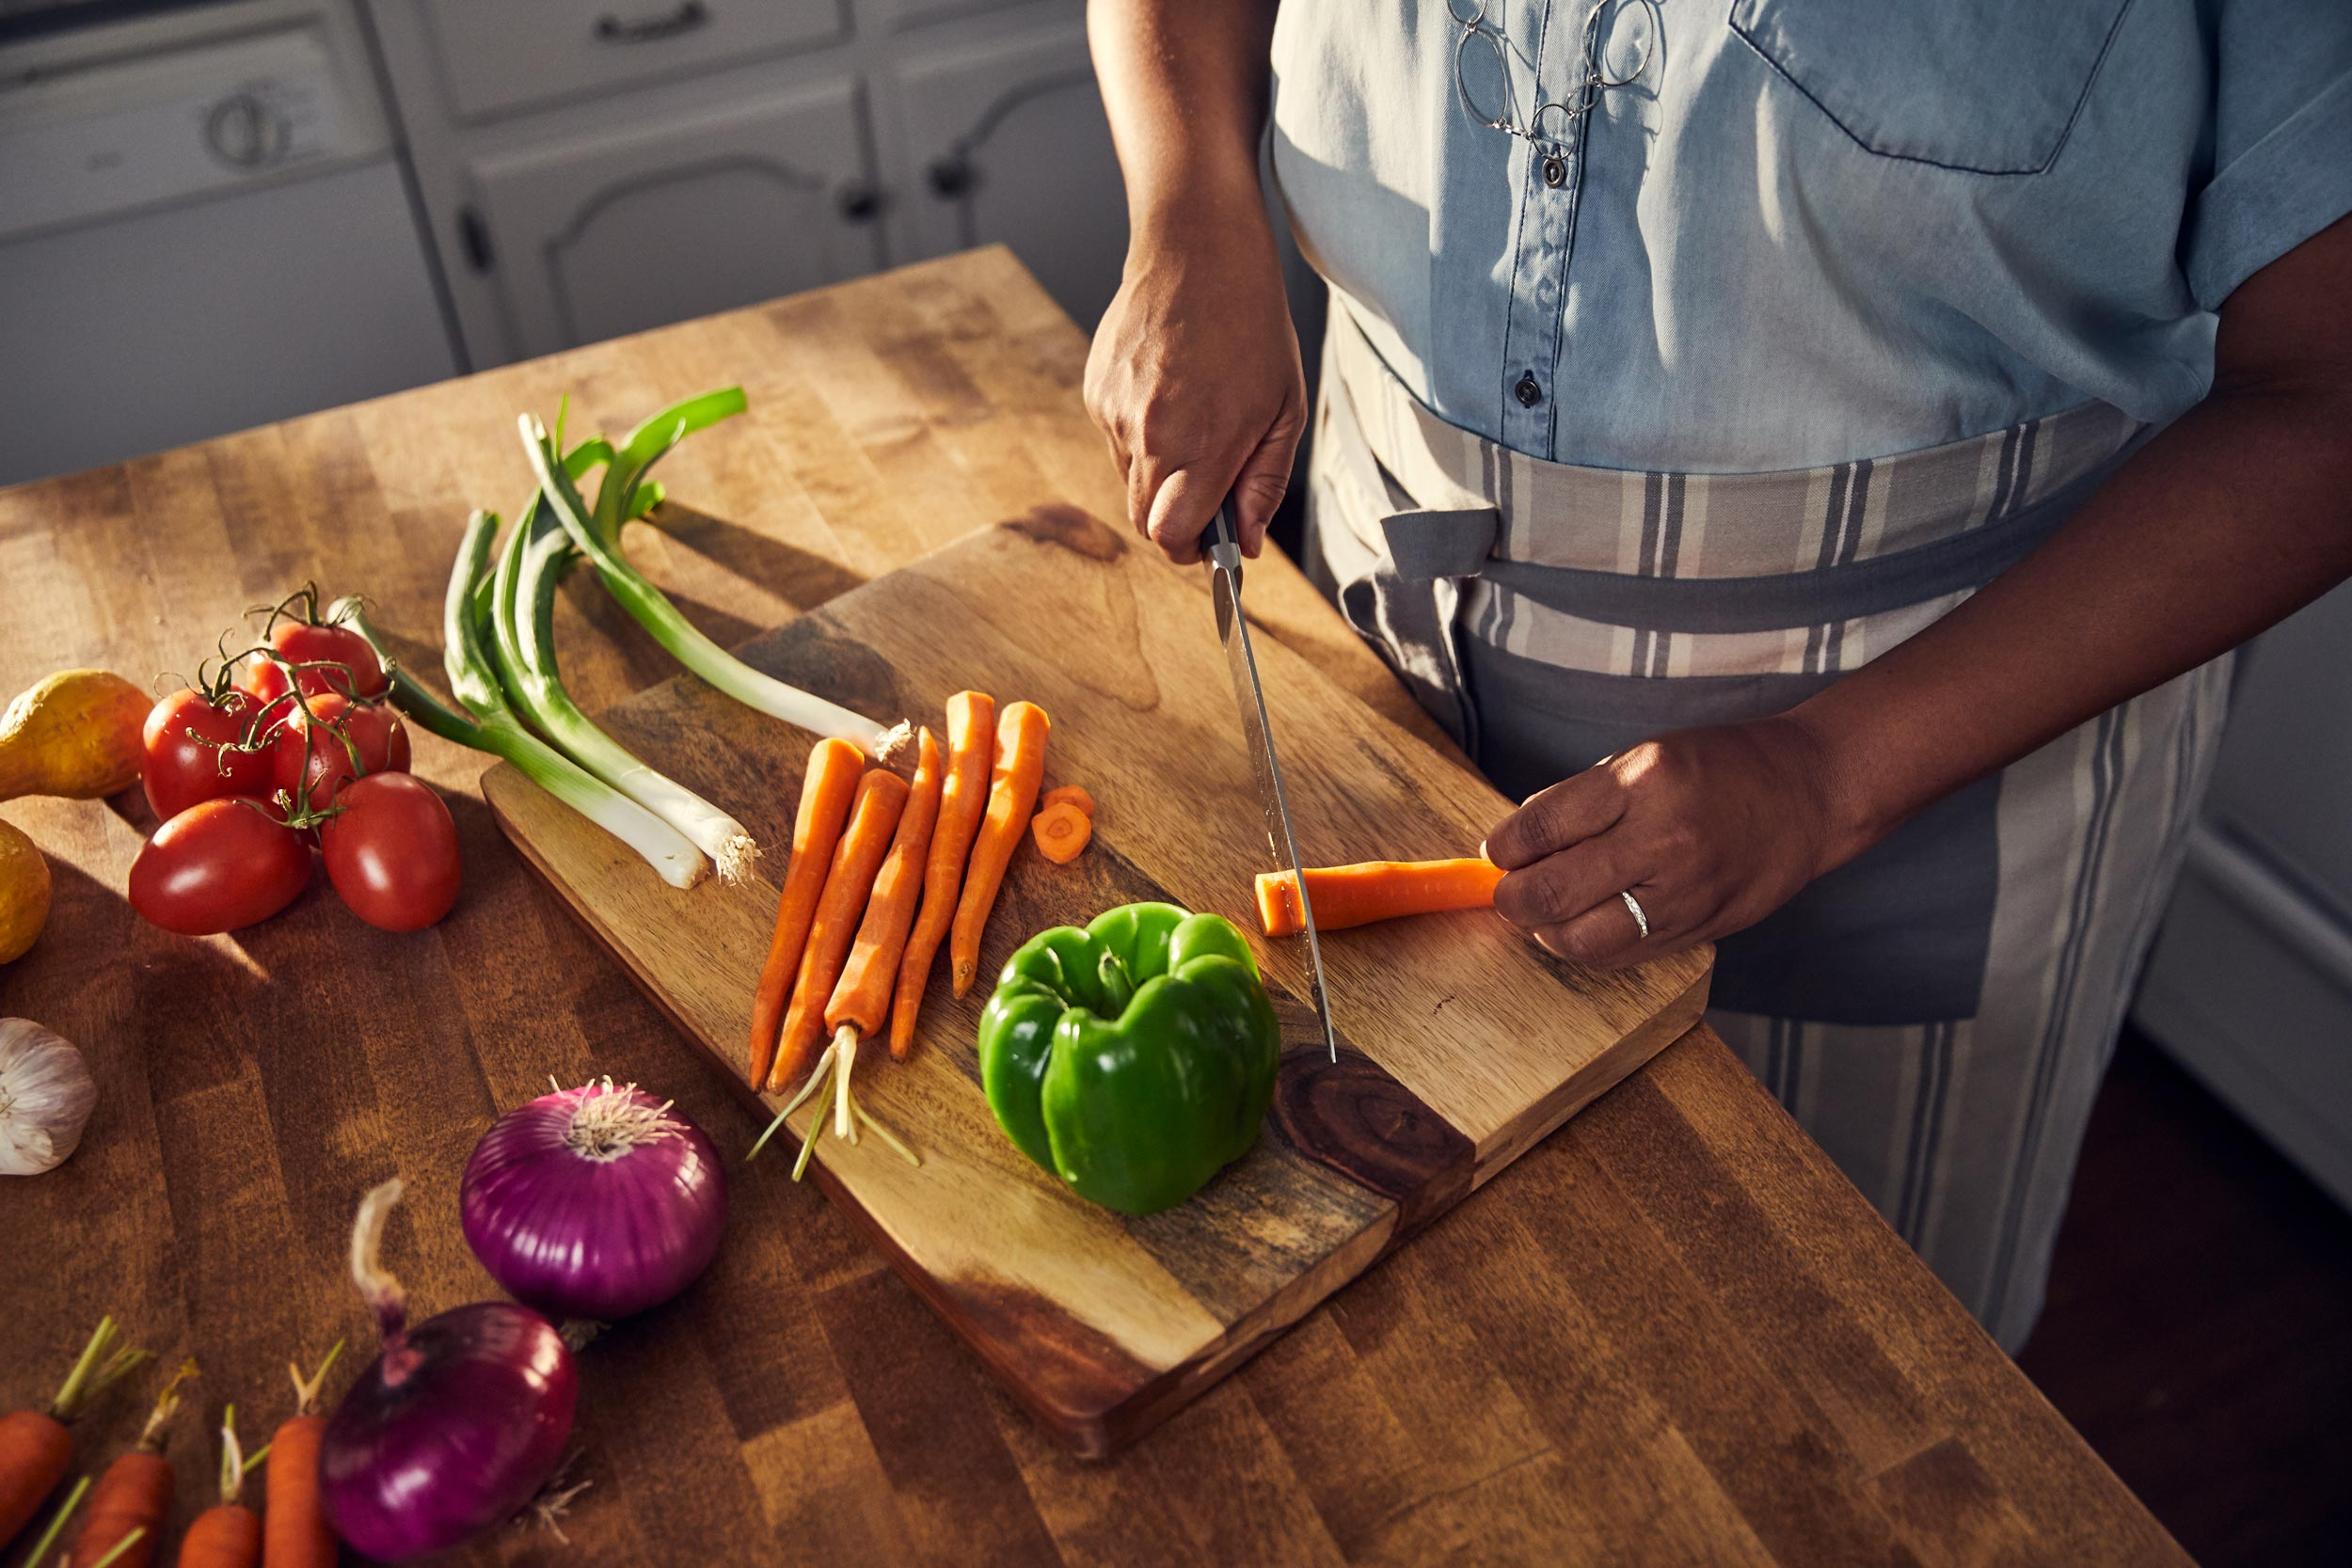 hands cutting carrot on cutting board, washington dc commercial photography